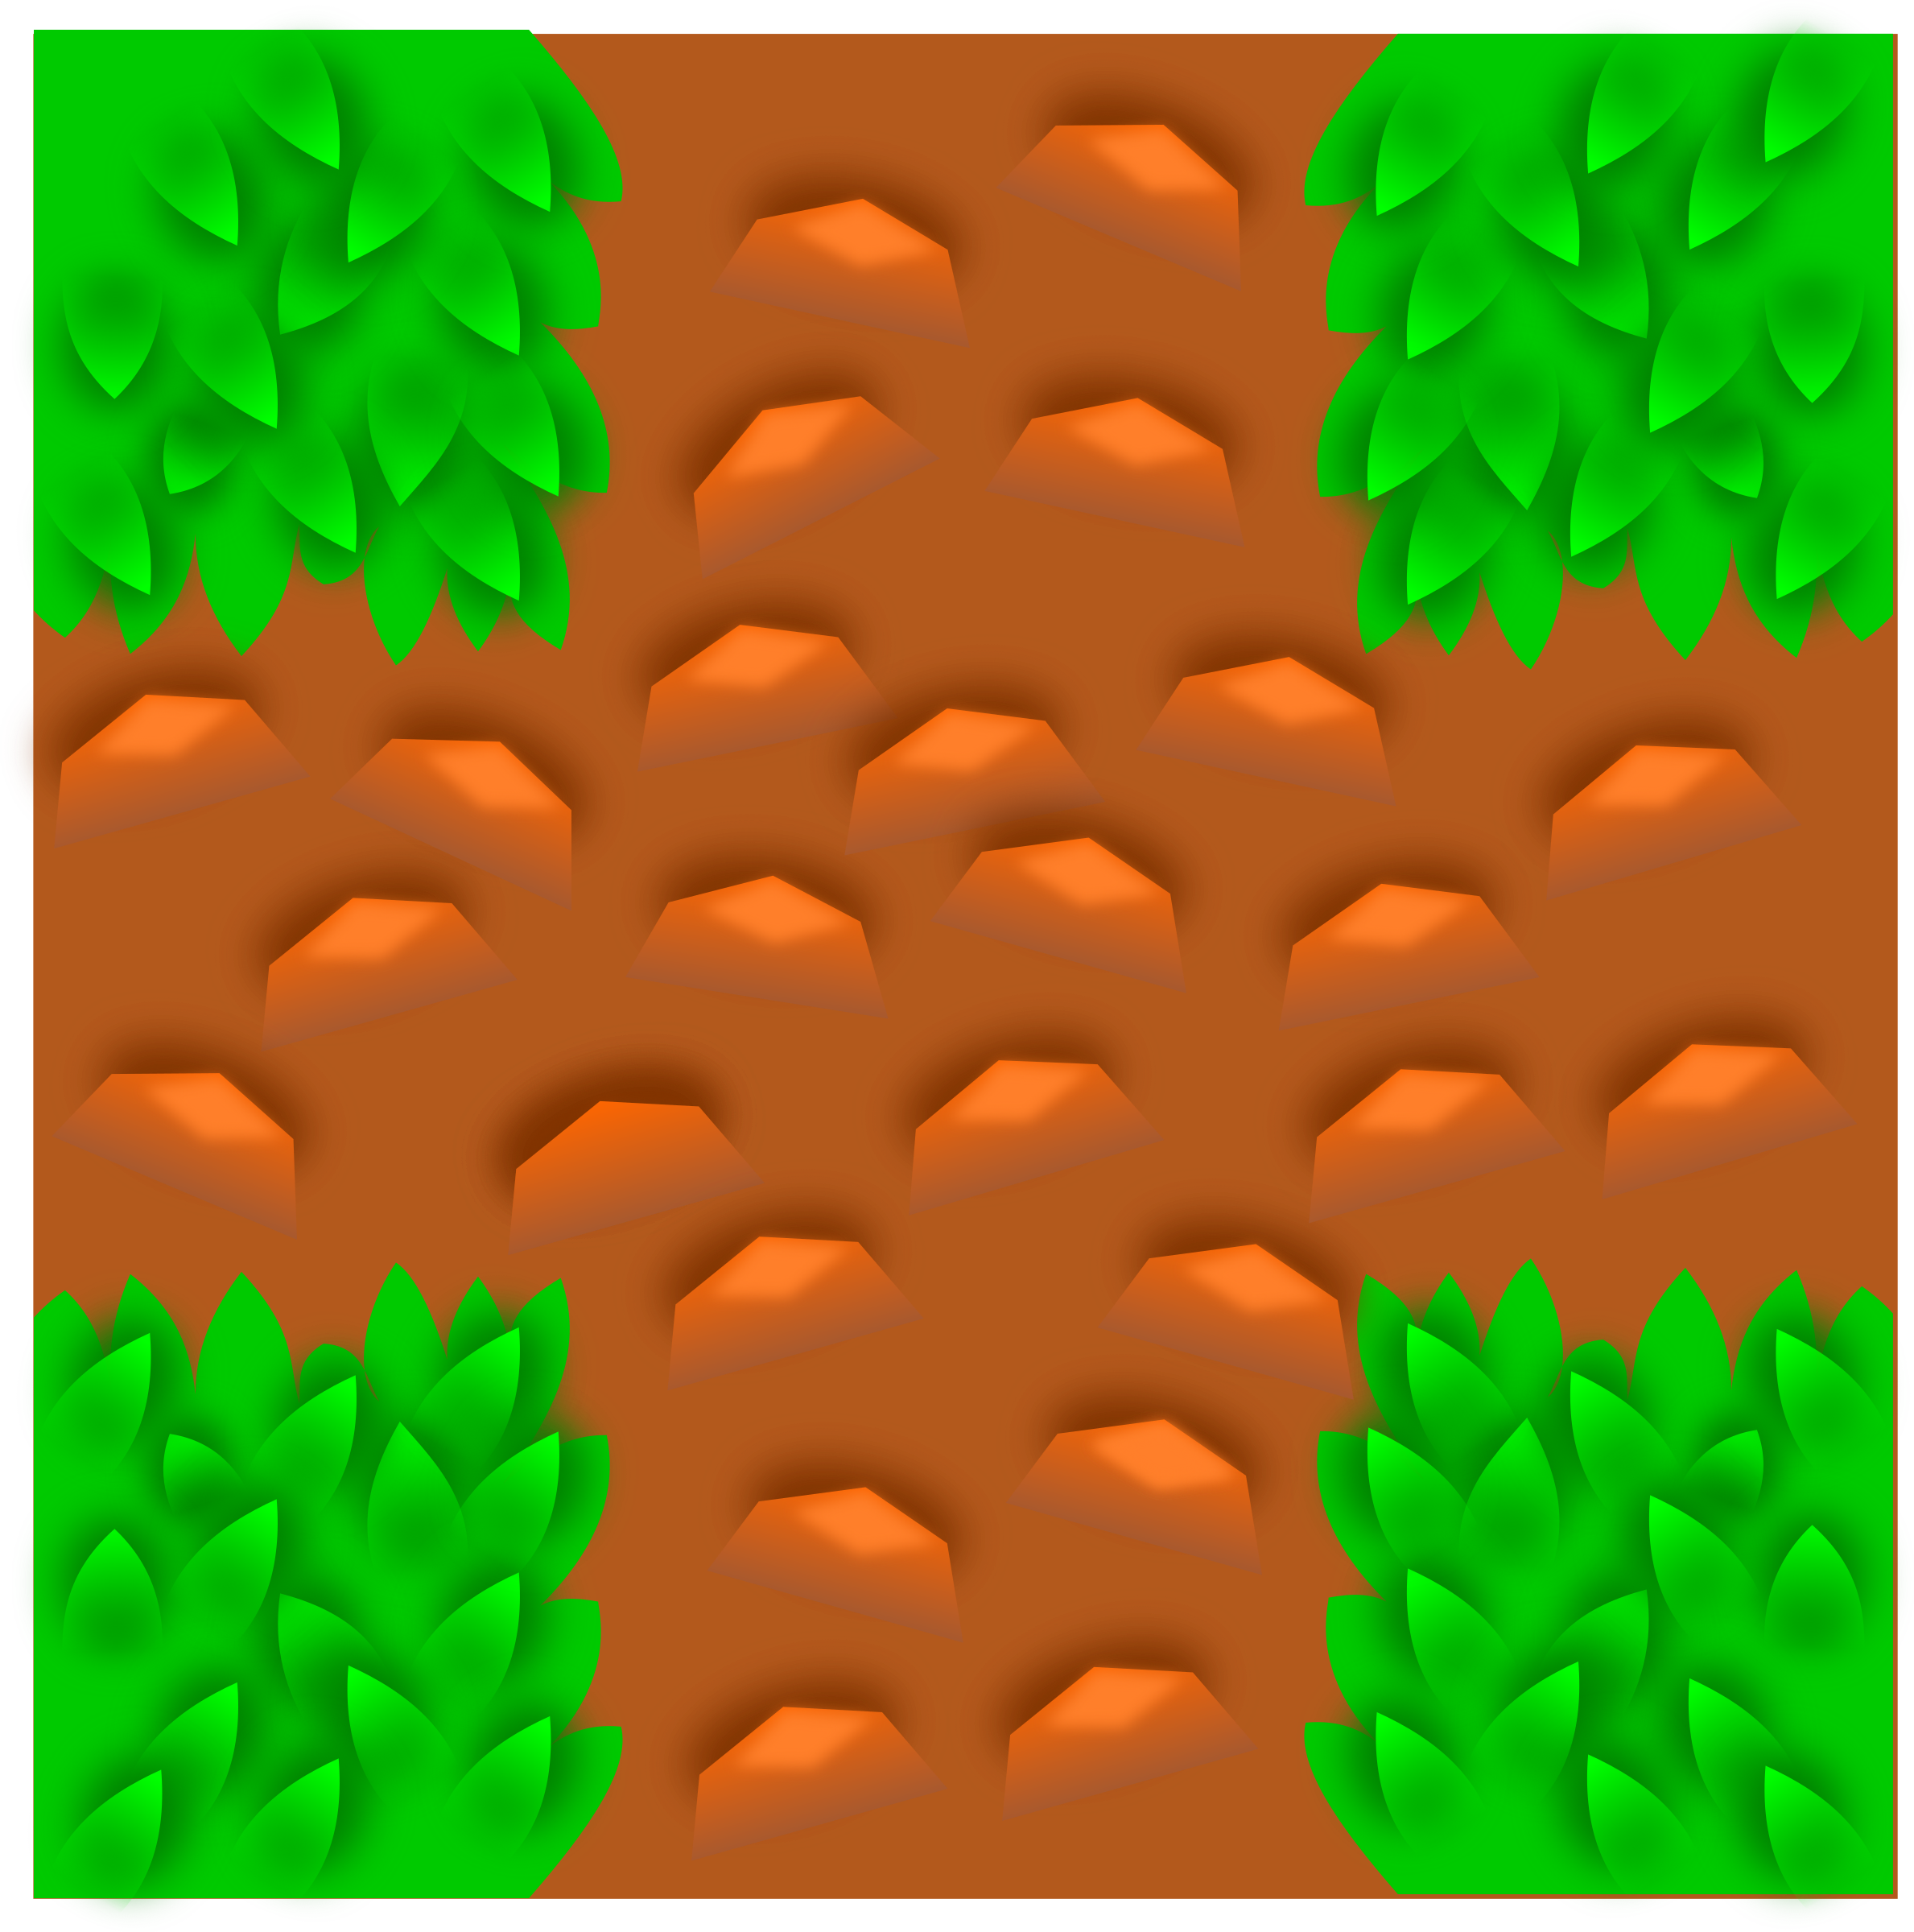 Mud clipart vector. Grass tile pattern game